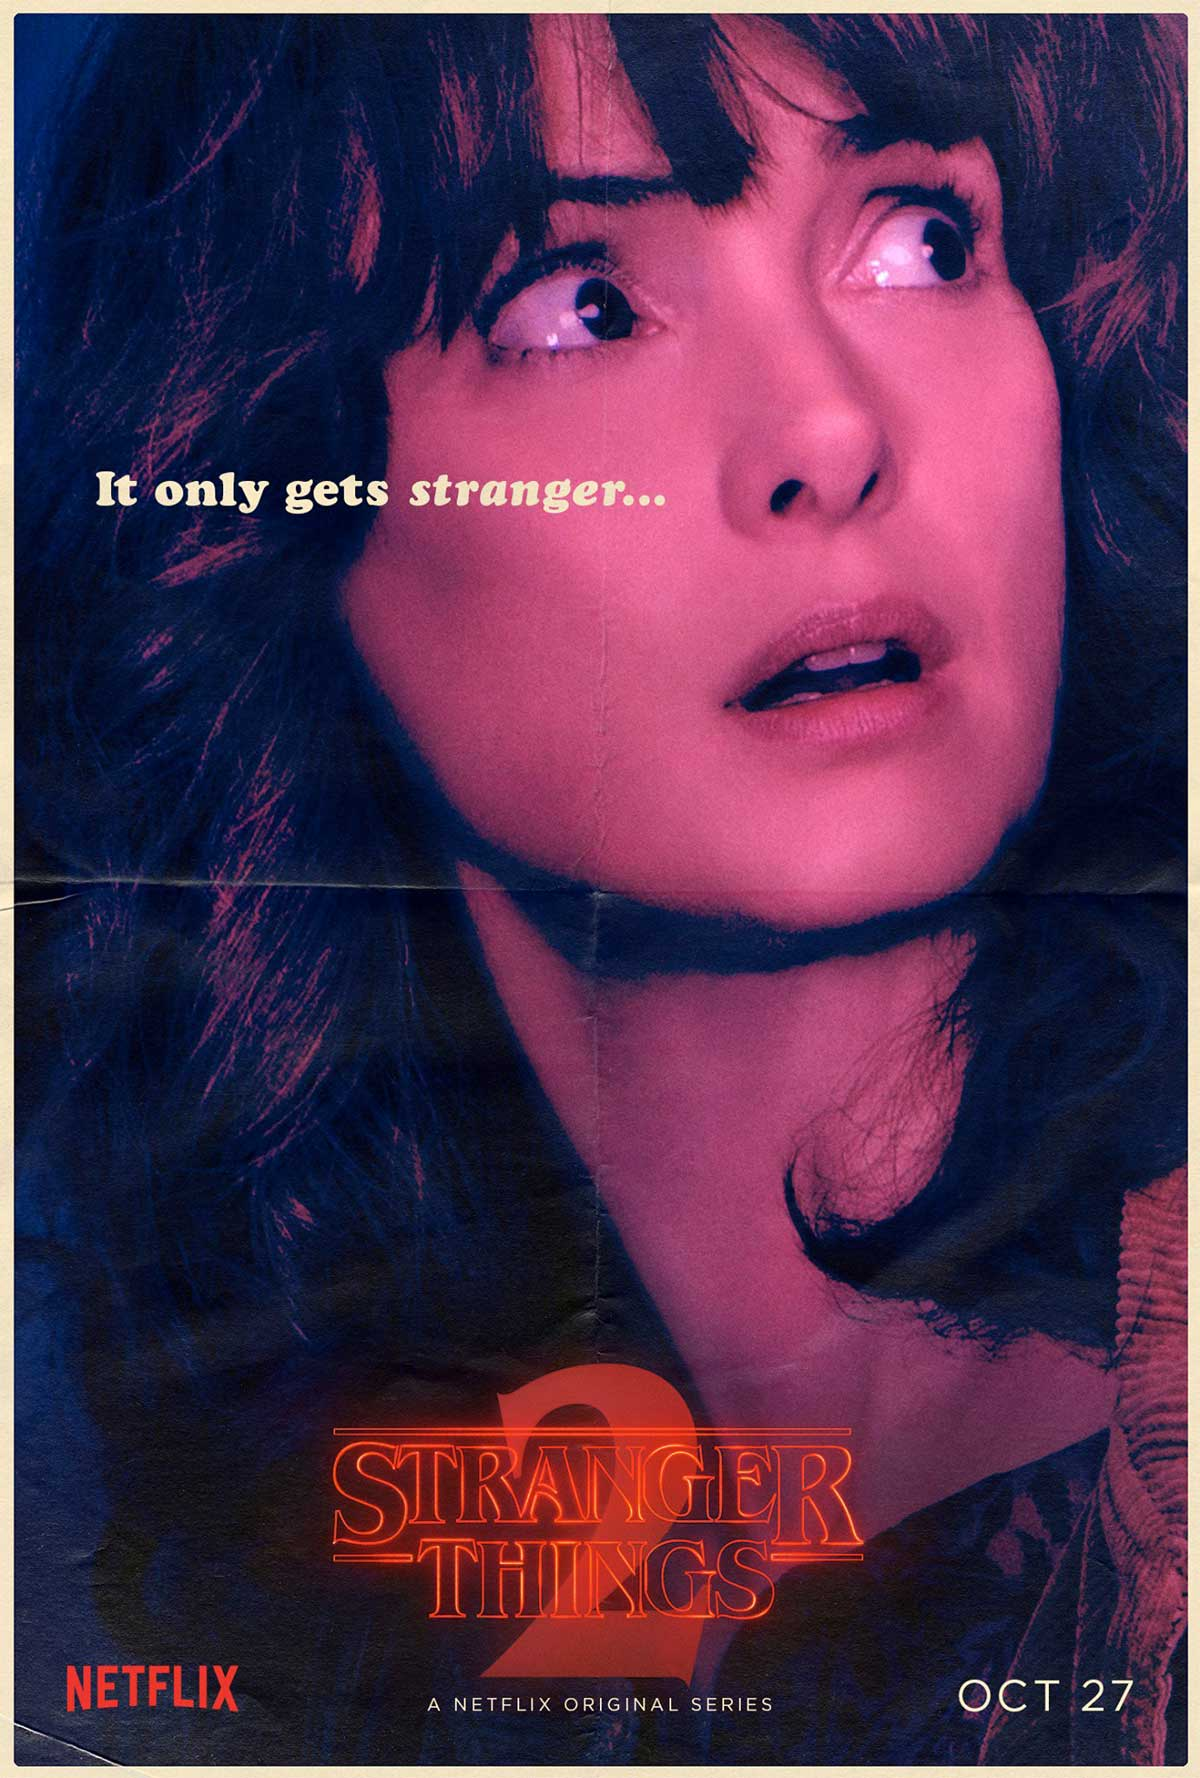 stranger-things-season-2-poster-winona-ryder